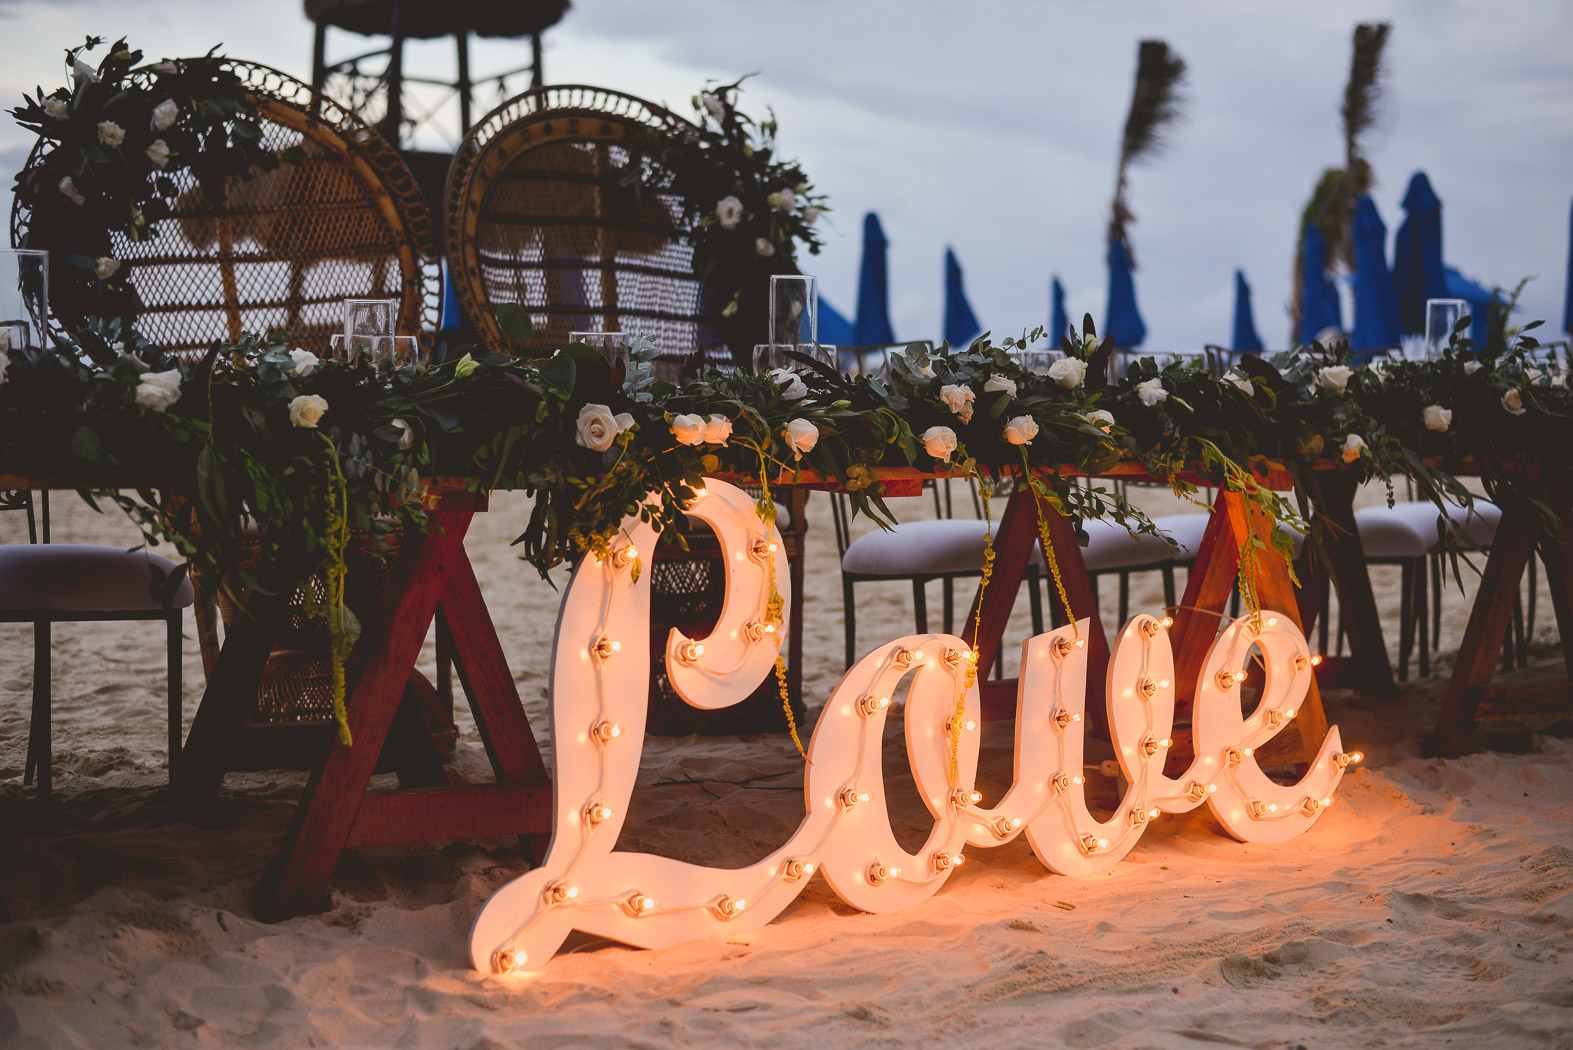 LOVE sign lit up